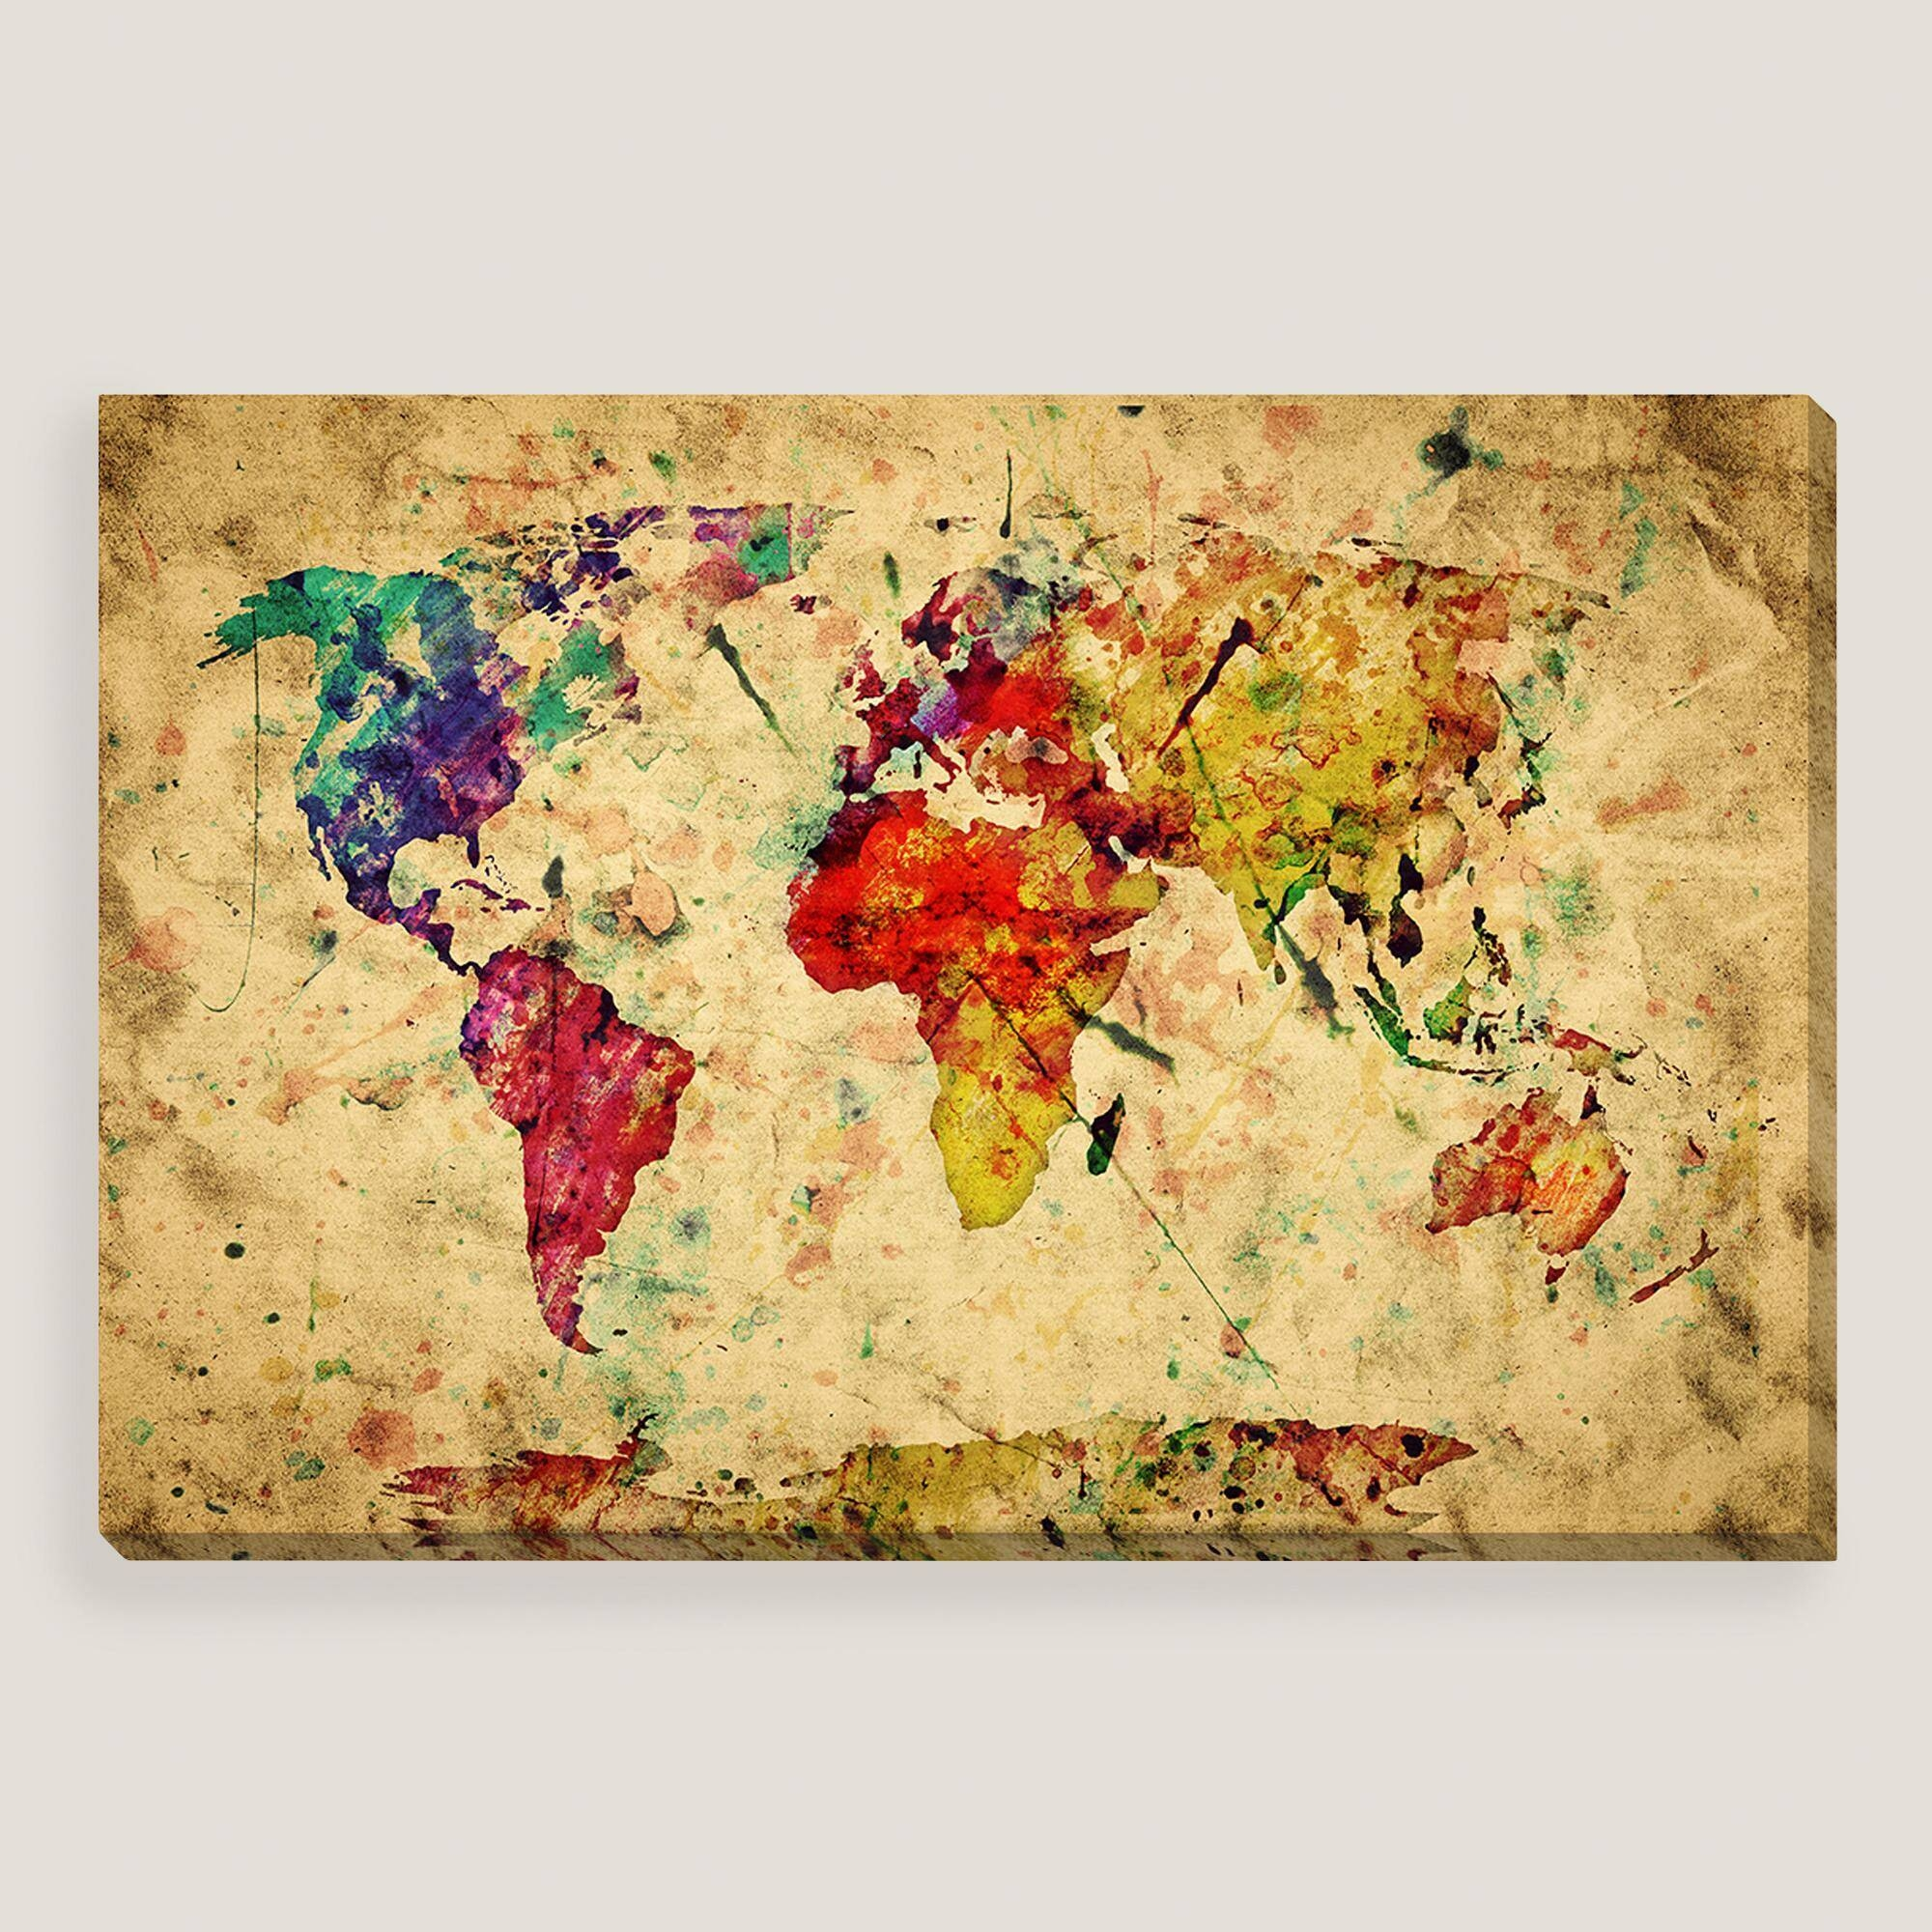 Wall Art Design Ideas: Customize Framed Vintage World Map Wall Art In Most Popular Framed World Map Wall Art (View 14 of 20)